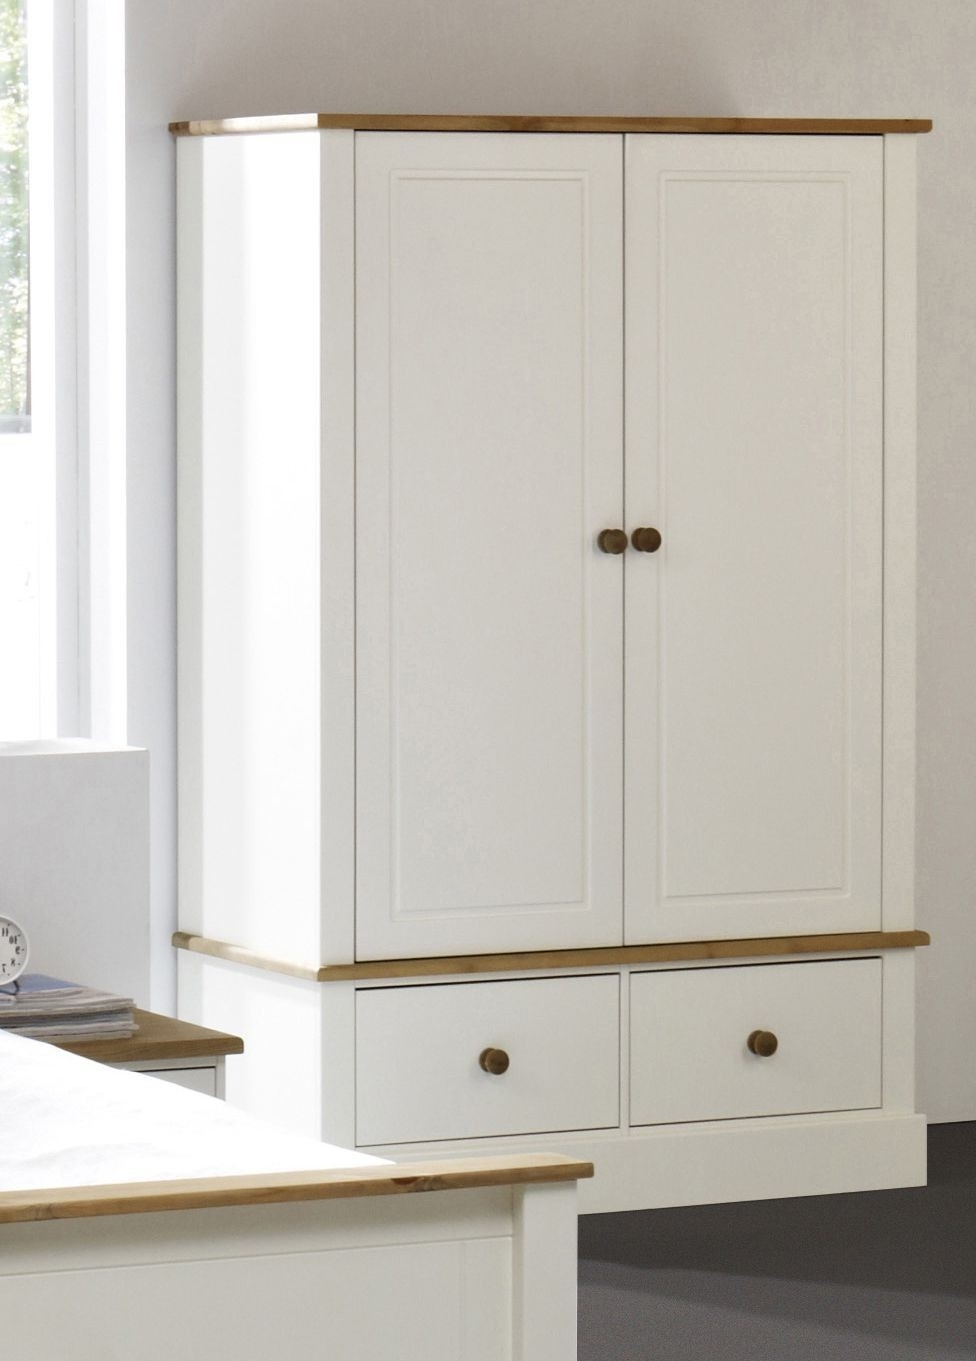 Large White Wardrobes With Drawers Pertaining To Well Known White Wardrobe And Drawers With Mirror Triple Large This Will Be A (View 11 of 15)